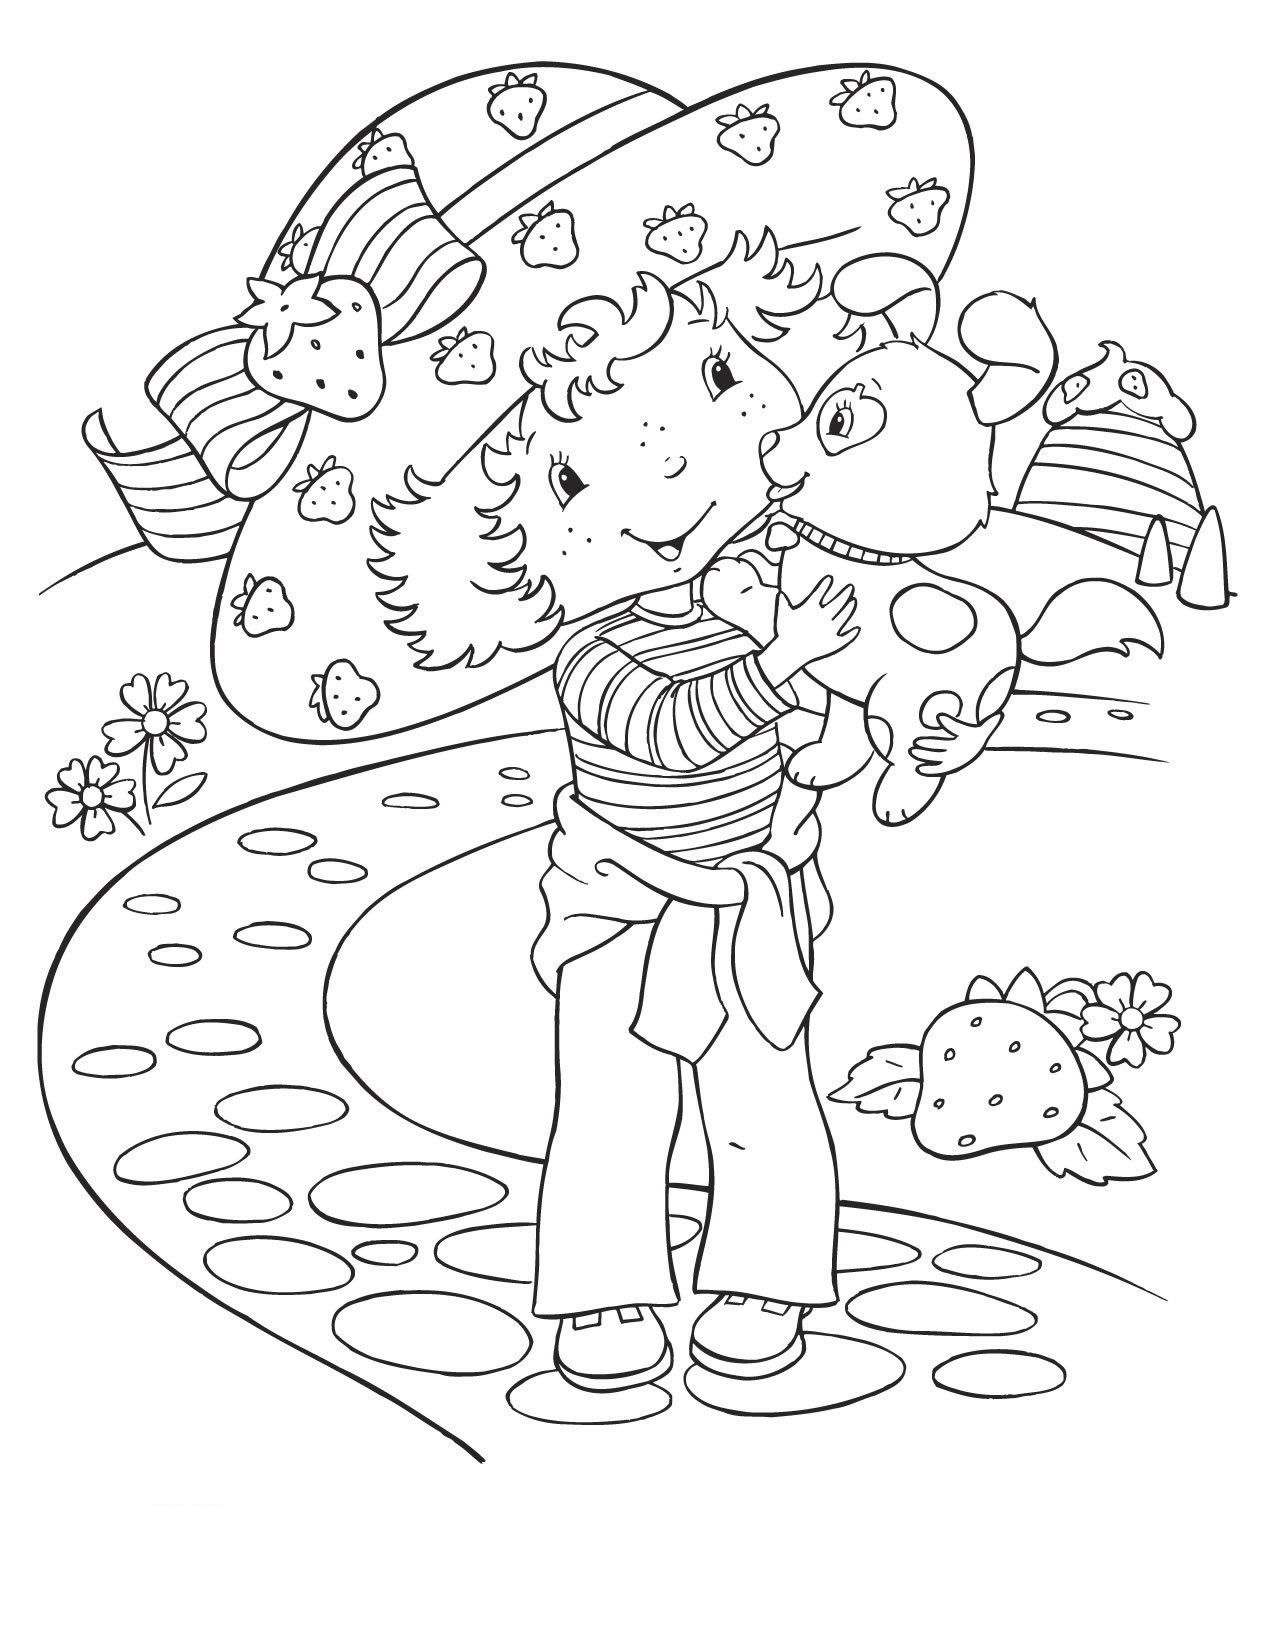 Strawberry Shortcake Kids Coloring